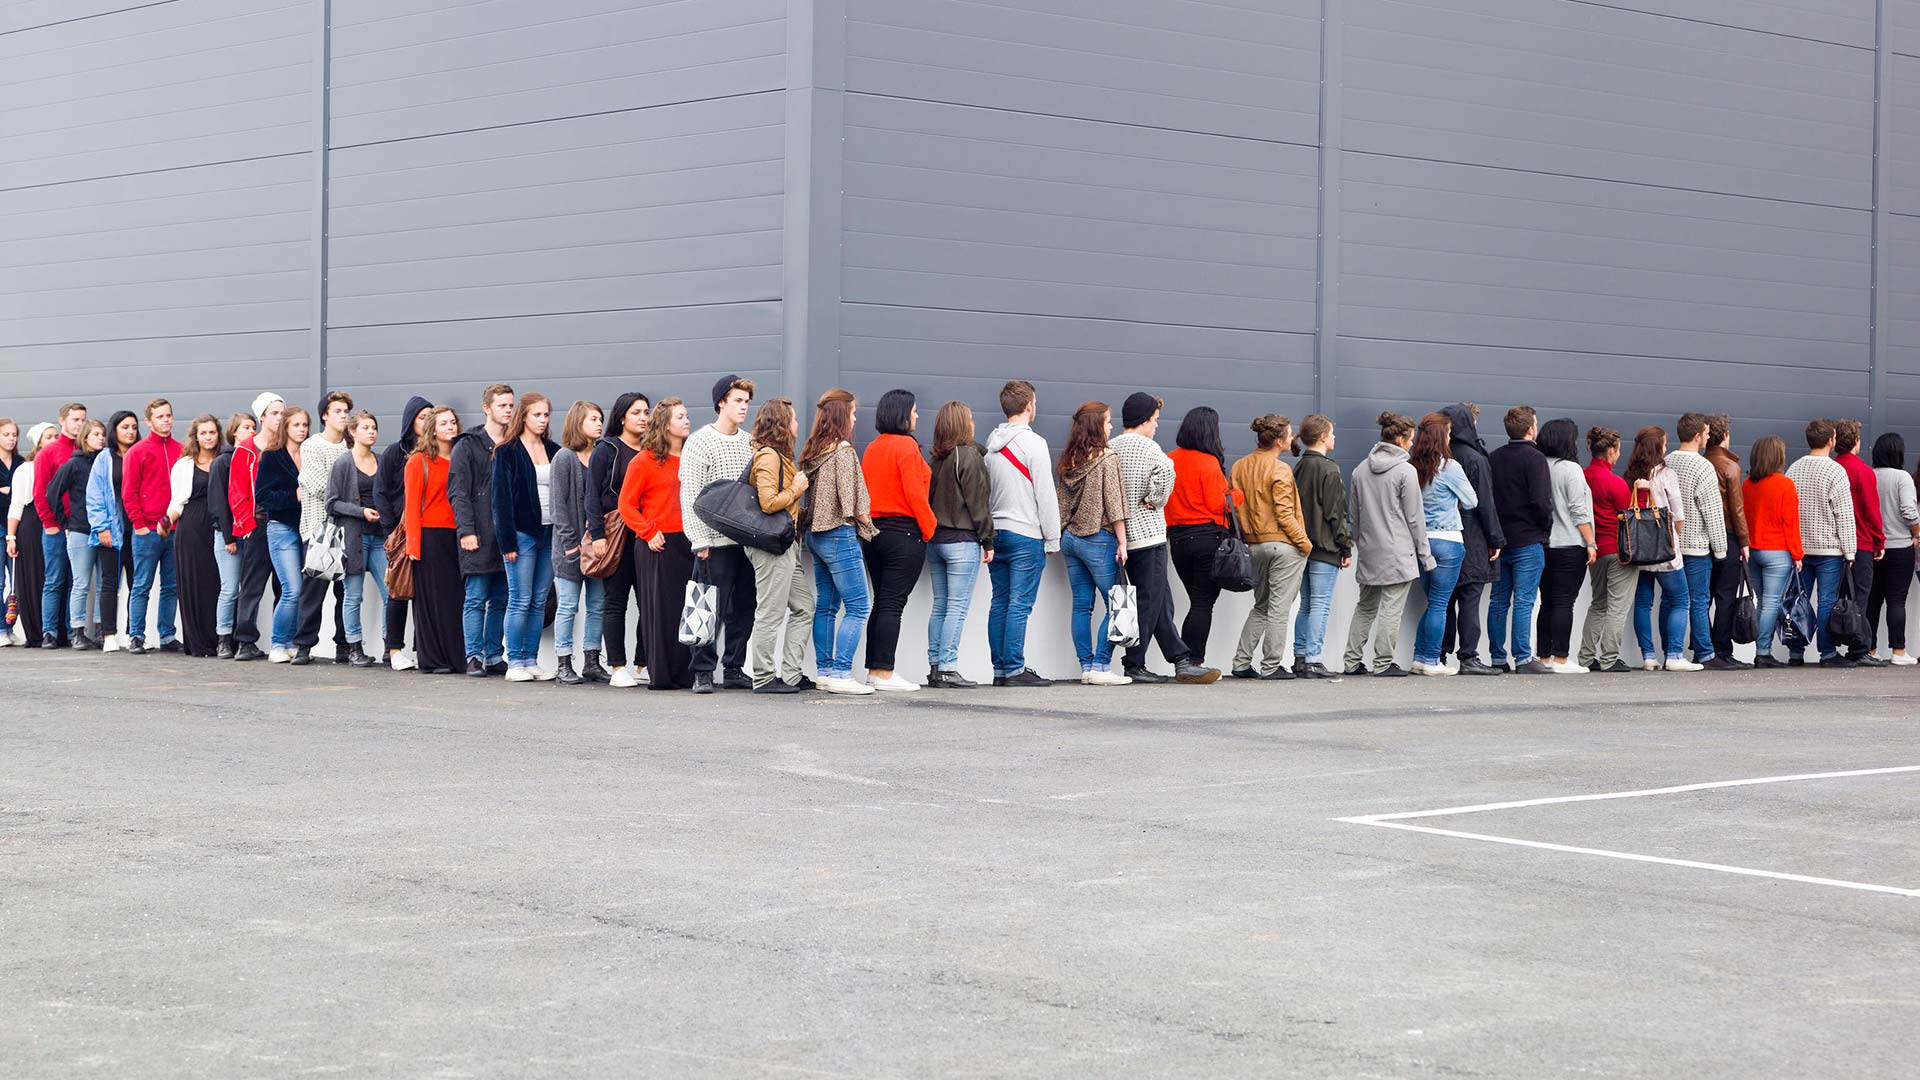 refinance your mortgage now or wait in a very  very long line